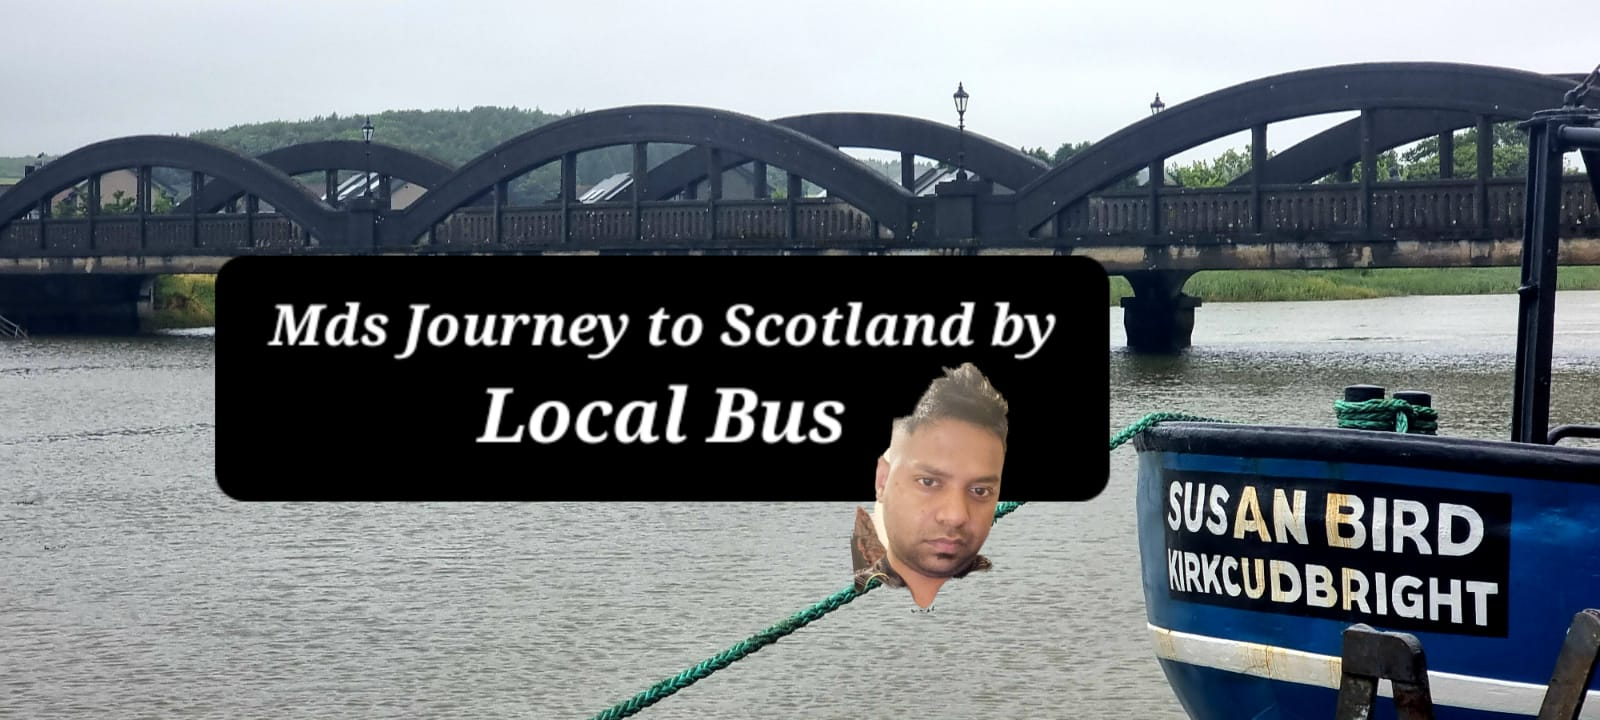 Read more about the article Newcastle to Scotland by Local Bus? Polar Bites( Kirkcudbright)- Mds Biggest Journey😊❤️🚴🏼♂️👇🏻